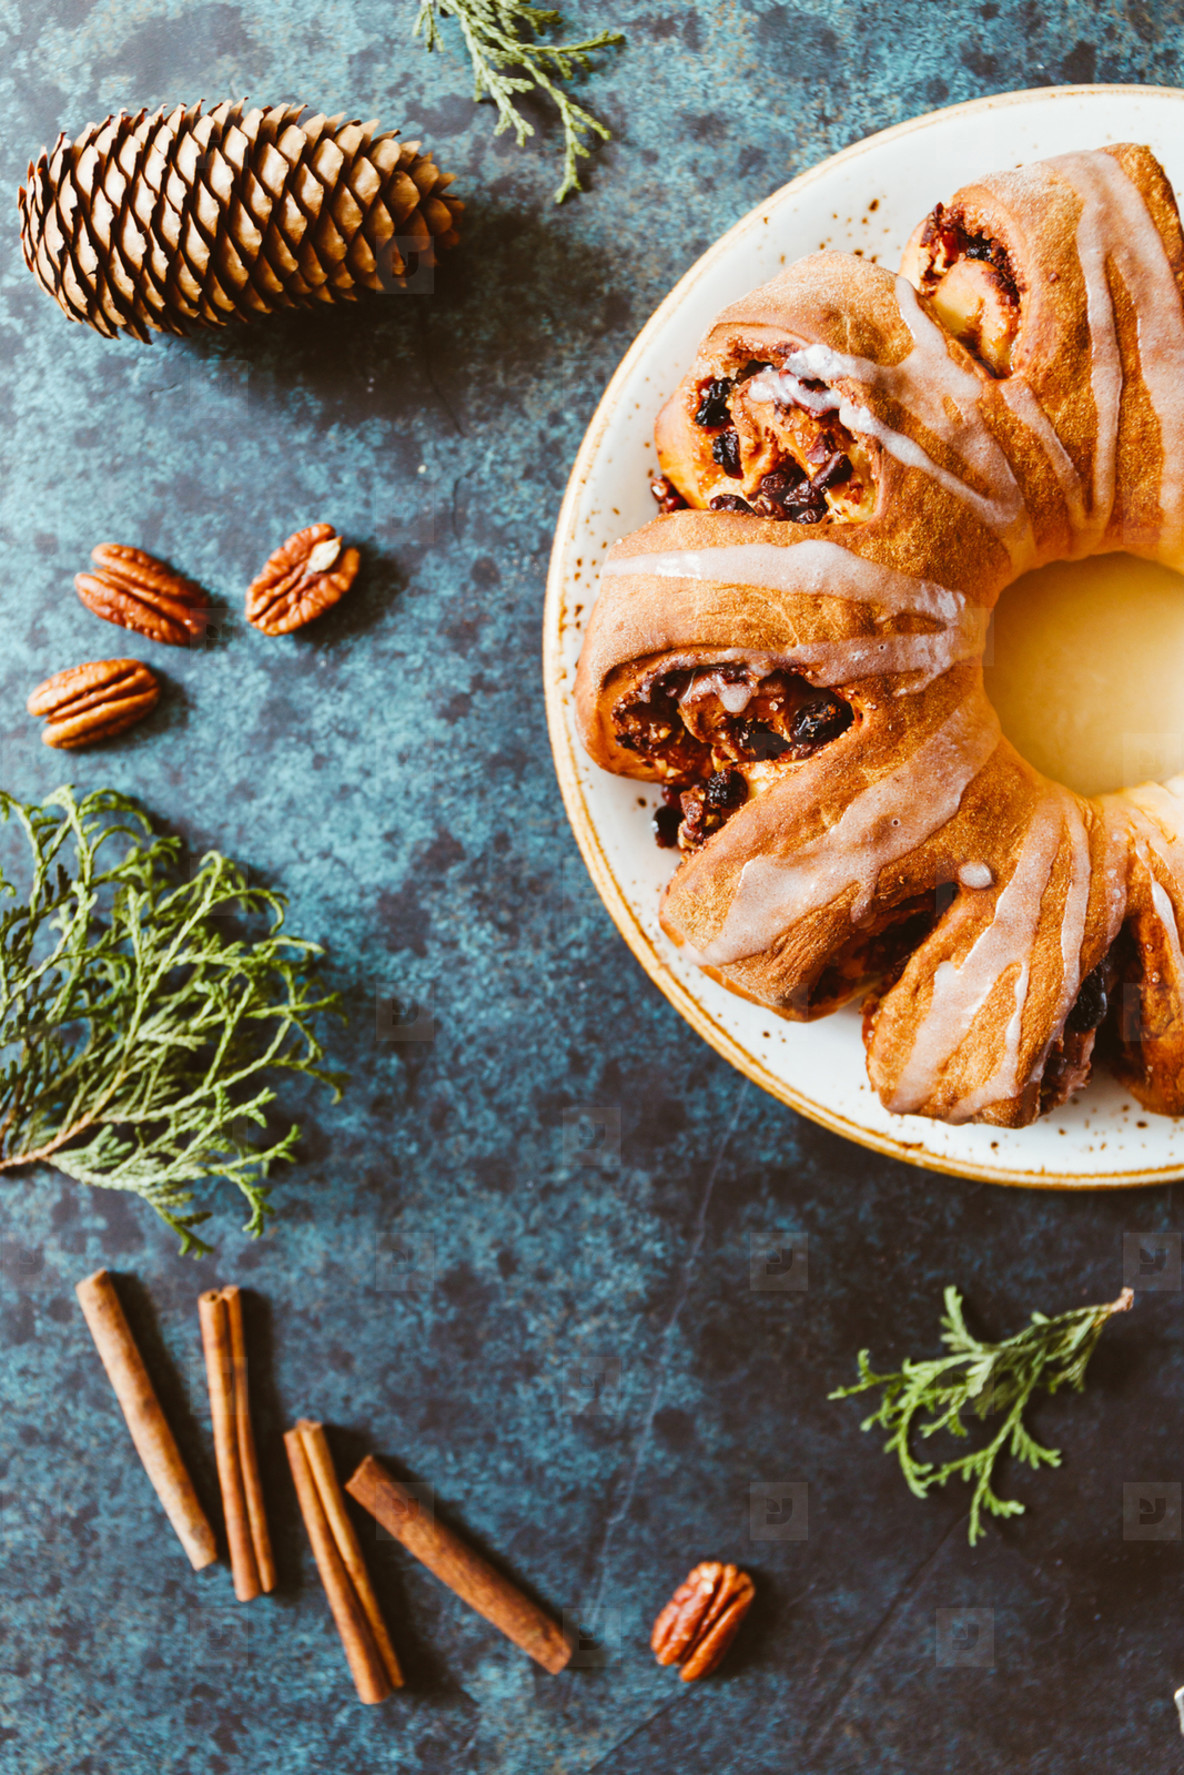 Creative flat lay  top view of Swedish tea ring Christmas cake with cinnamon  pecans and raisins on a blue background  The concept of cozy winter Holidays and homemade bakery